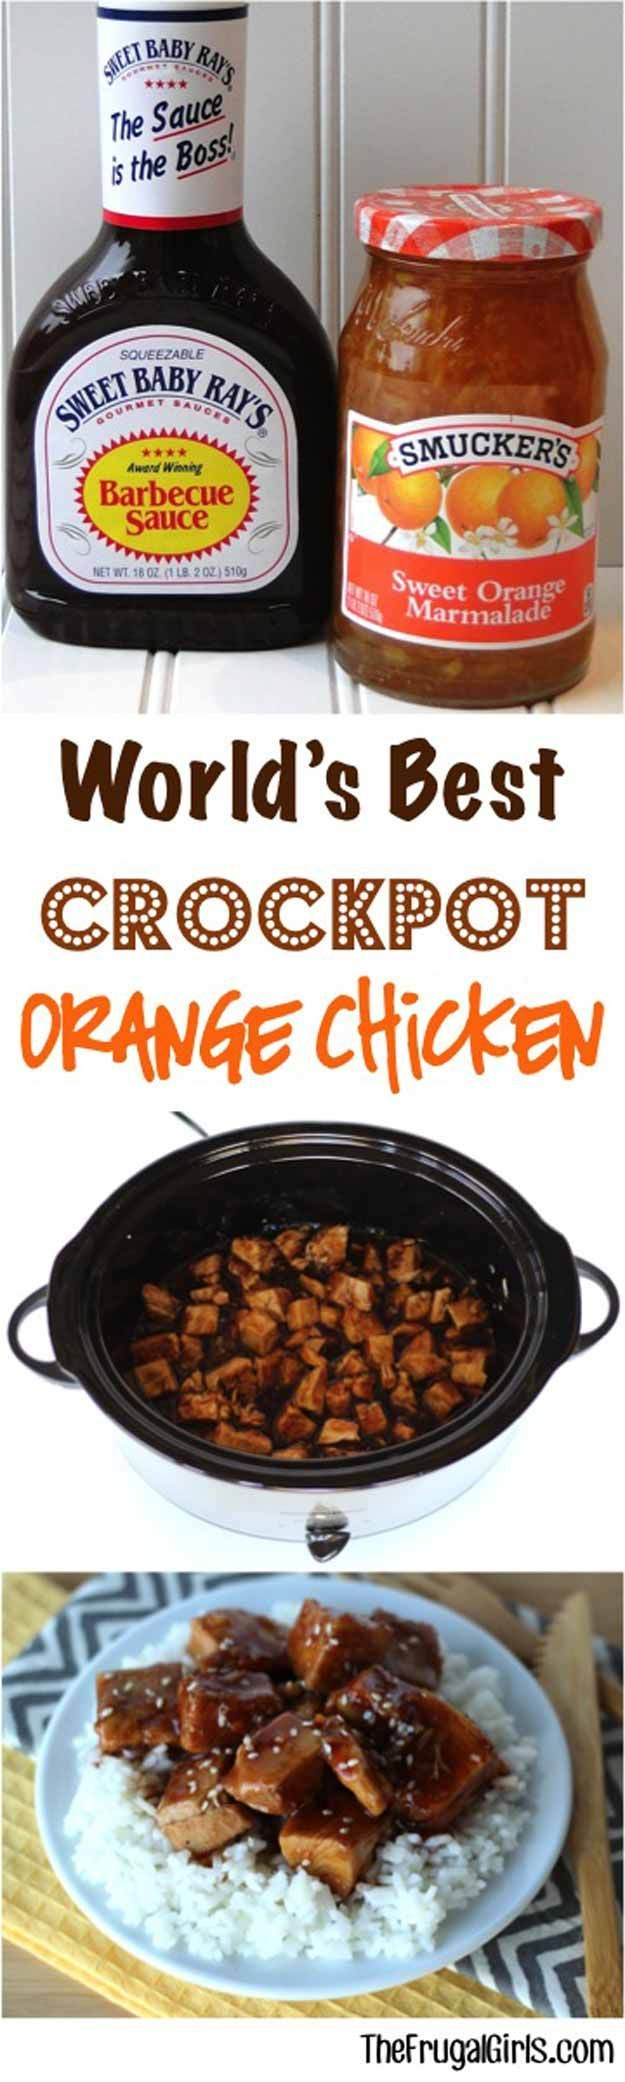 Orange Chicken Recipe | 11 Succulent Chicken Crockpot Recipes To Make For Dinner | Super Tasty And Simple Recipe The Whole Family Will Love! by Pioneer Settler at http://pioneersettler.com/chicken-crockpot-recipes/